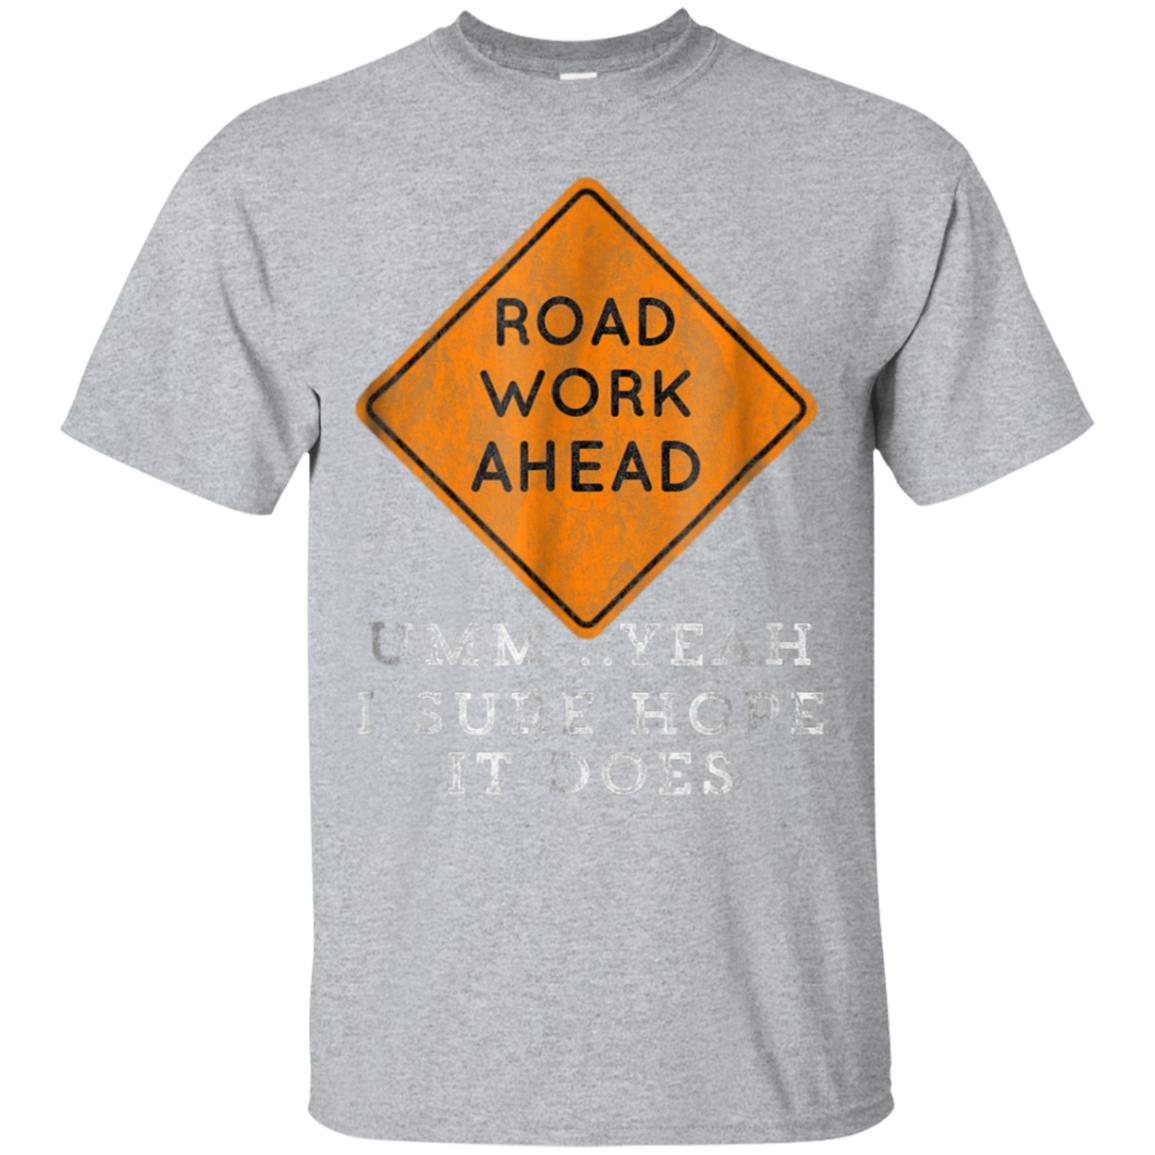 Road Work Ahead Sure Hope It Does Funny Meme T-Shirt 99promocode